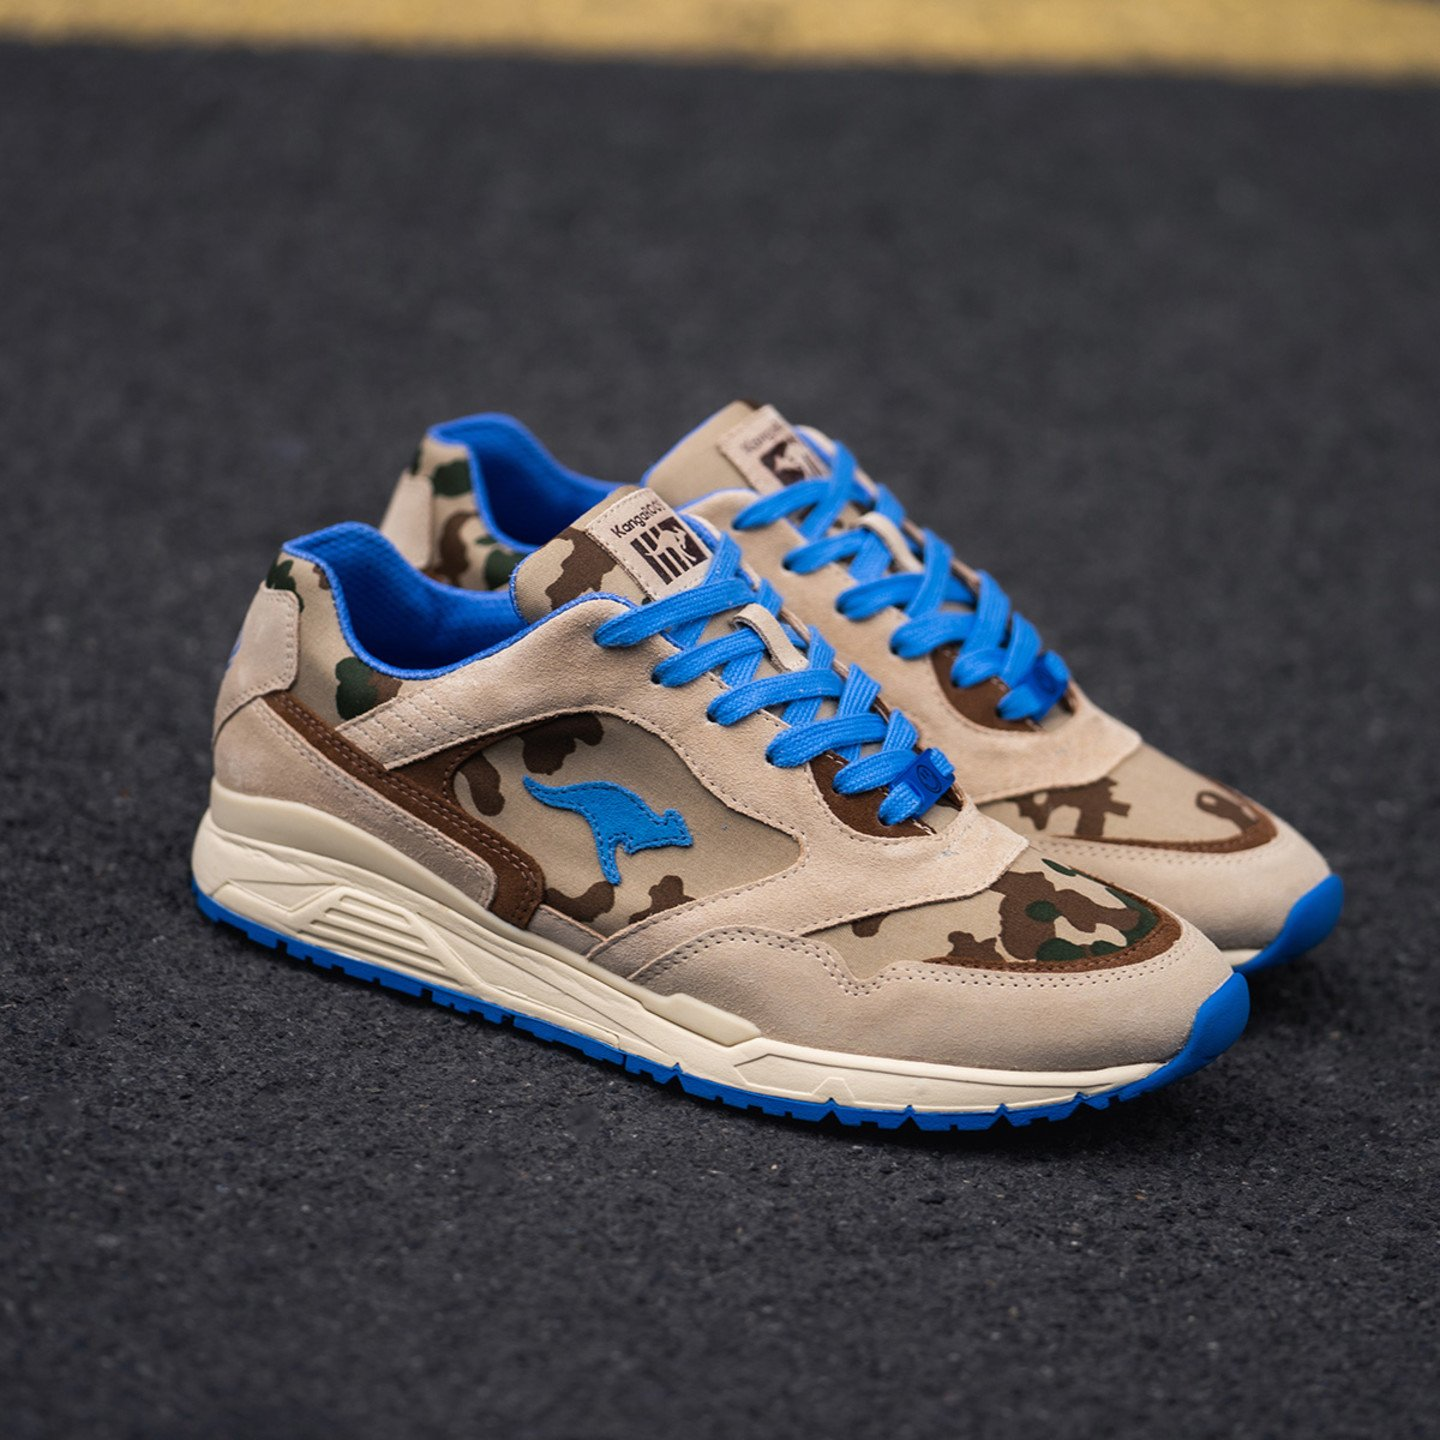 KangaROOS Ultimate 'Veteran Desert' - Made in Germany Desert Camo / UN Royal Blue 470V2-1170